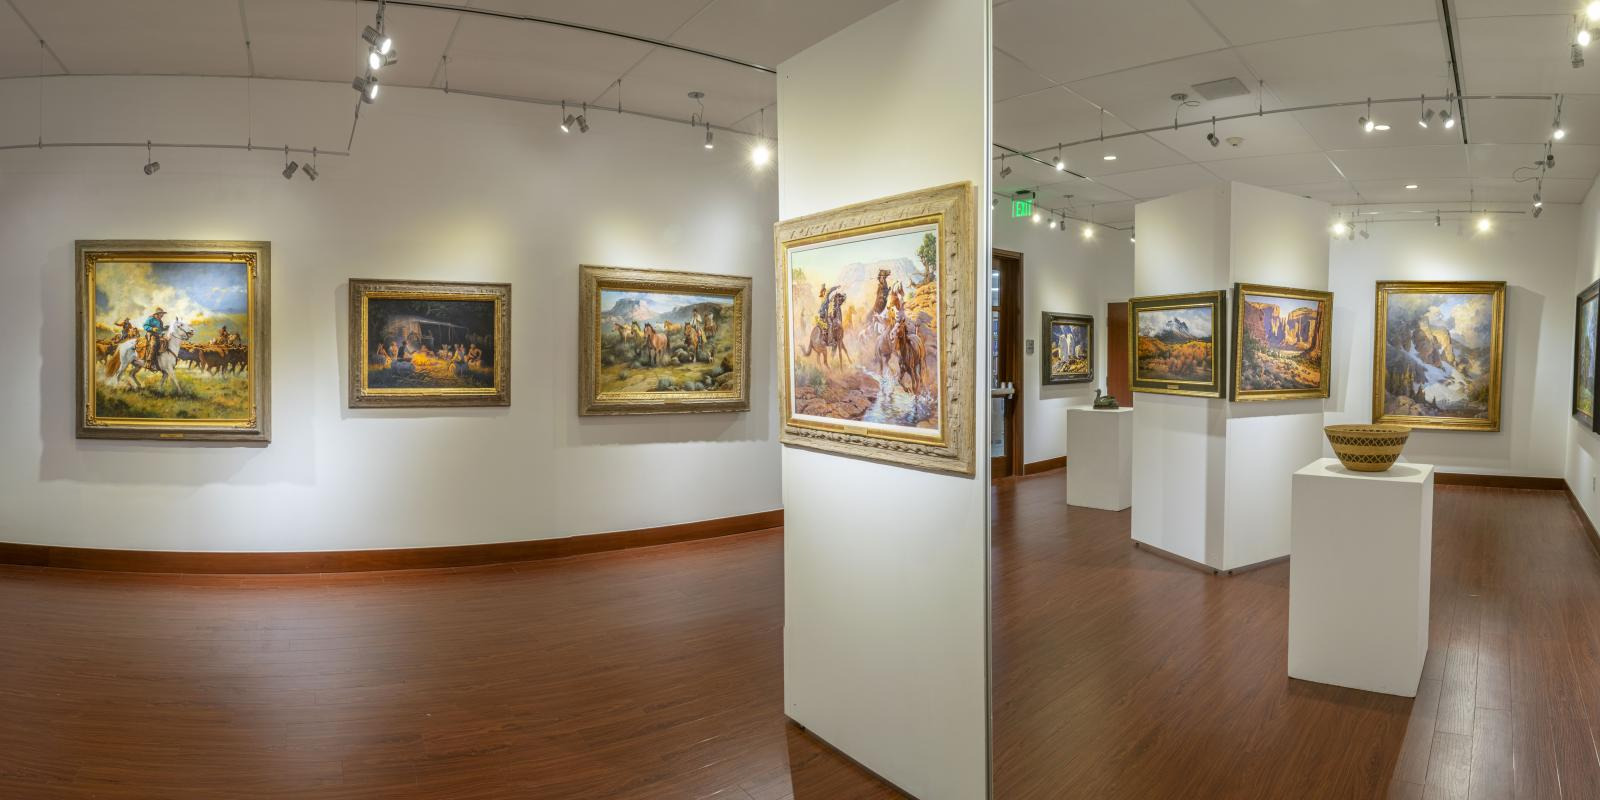 "Installation View, Entrance of gallery, ""Art of the West: New Acquisitions"" Exhibition, Jun 24, 2019 to Sep 26, 2019, Curator: Michele Cairella Fillmore, Don B. Huntley Gallery, Cal Poly Pomona."